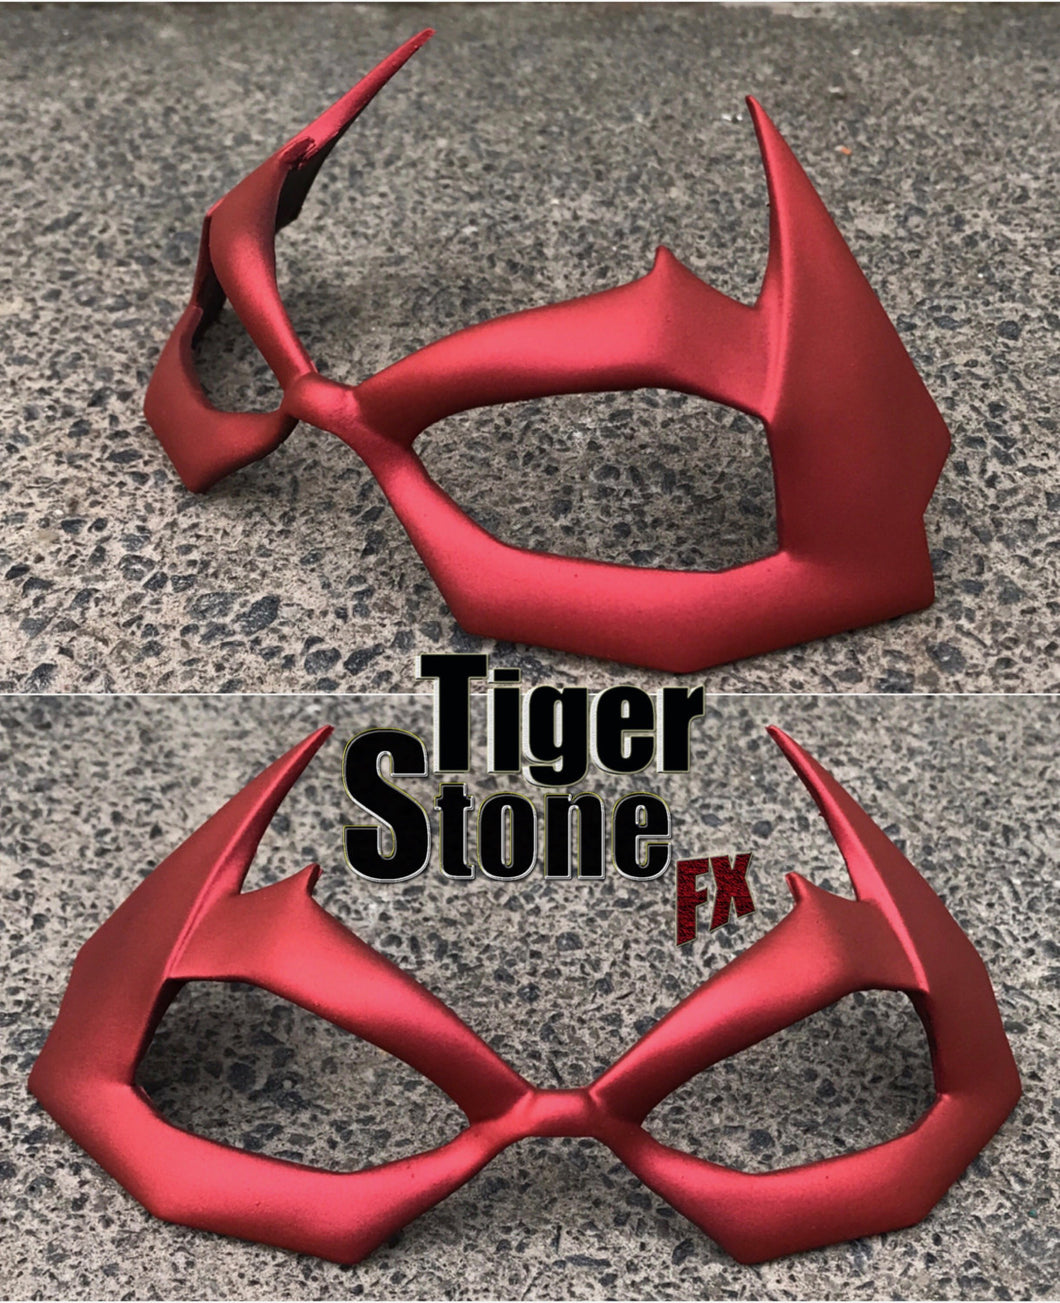 Jason Todd / Red Hood Hush inspired mask (can be made in many colors)